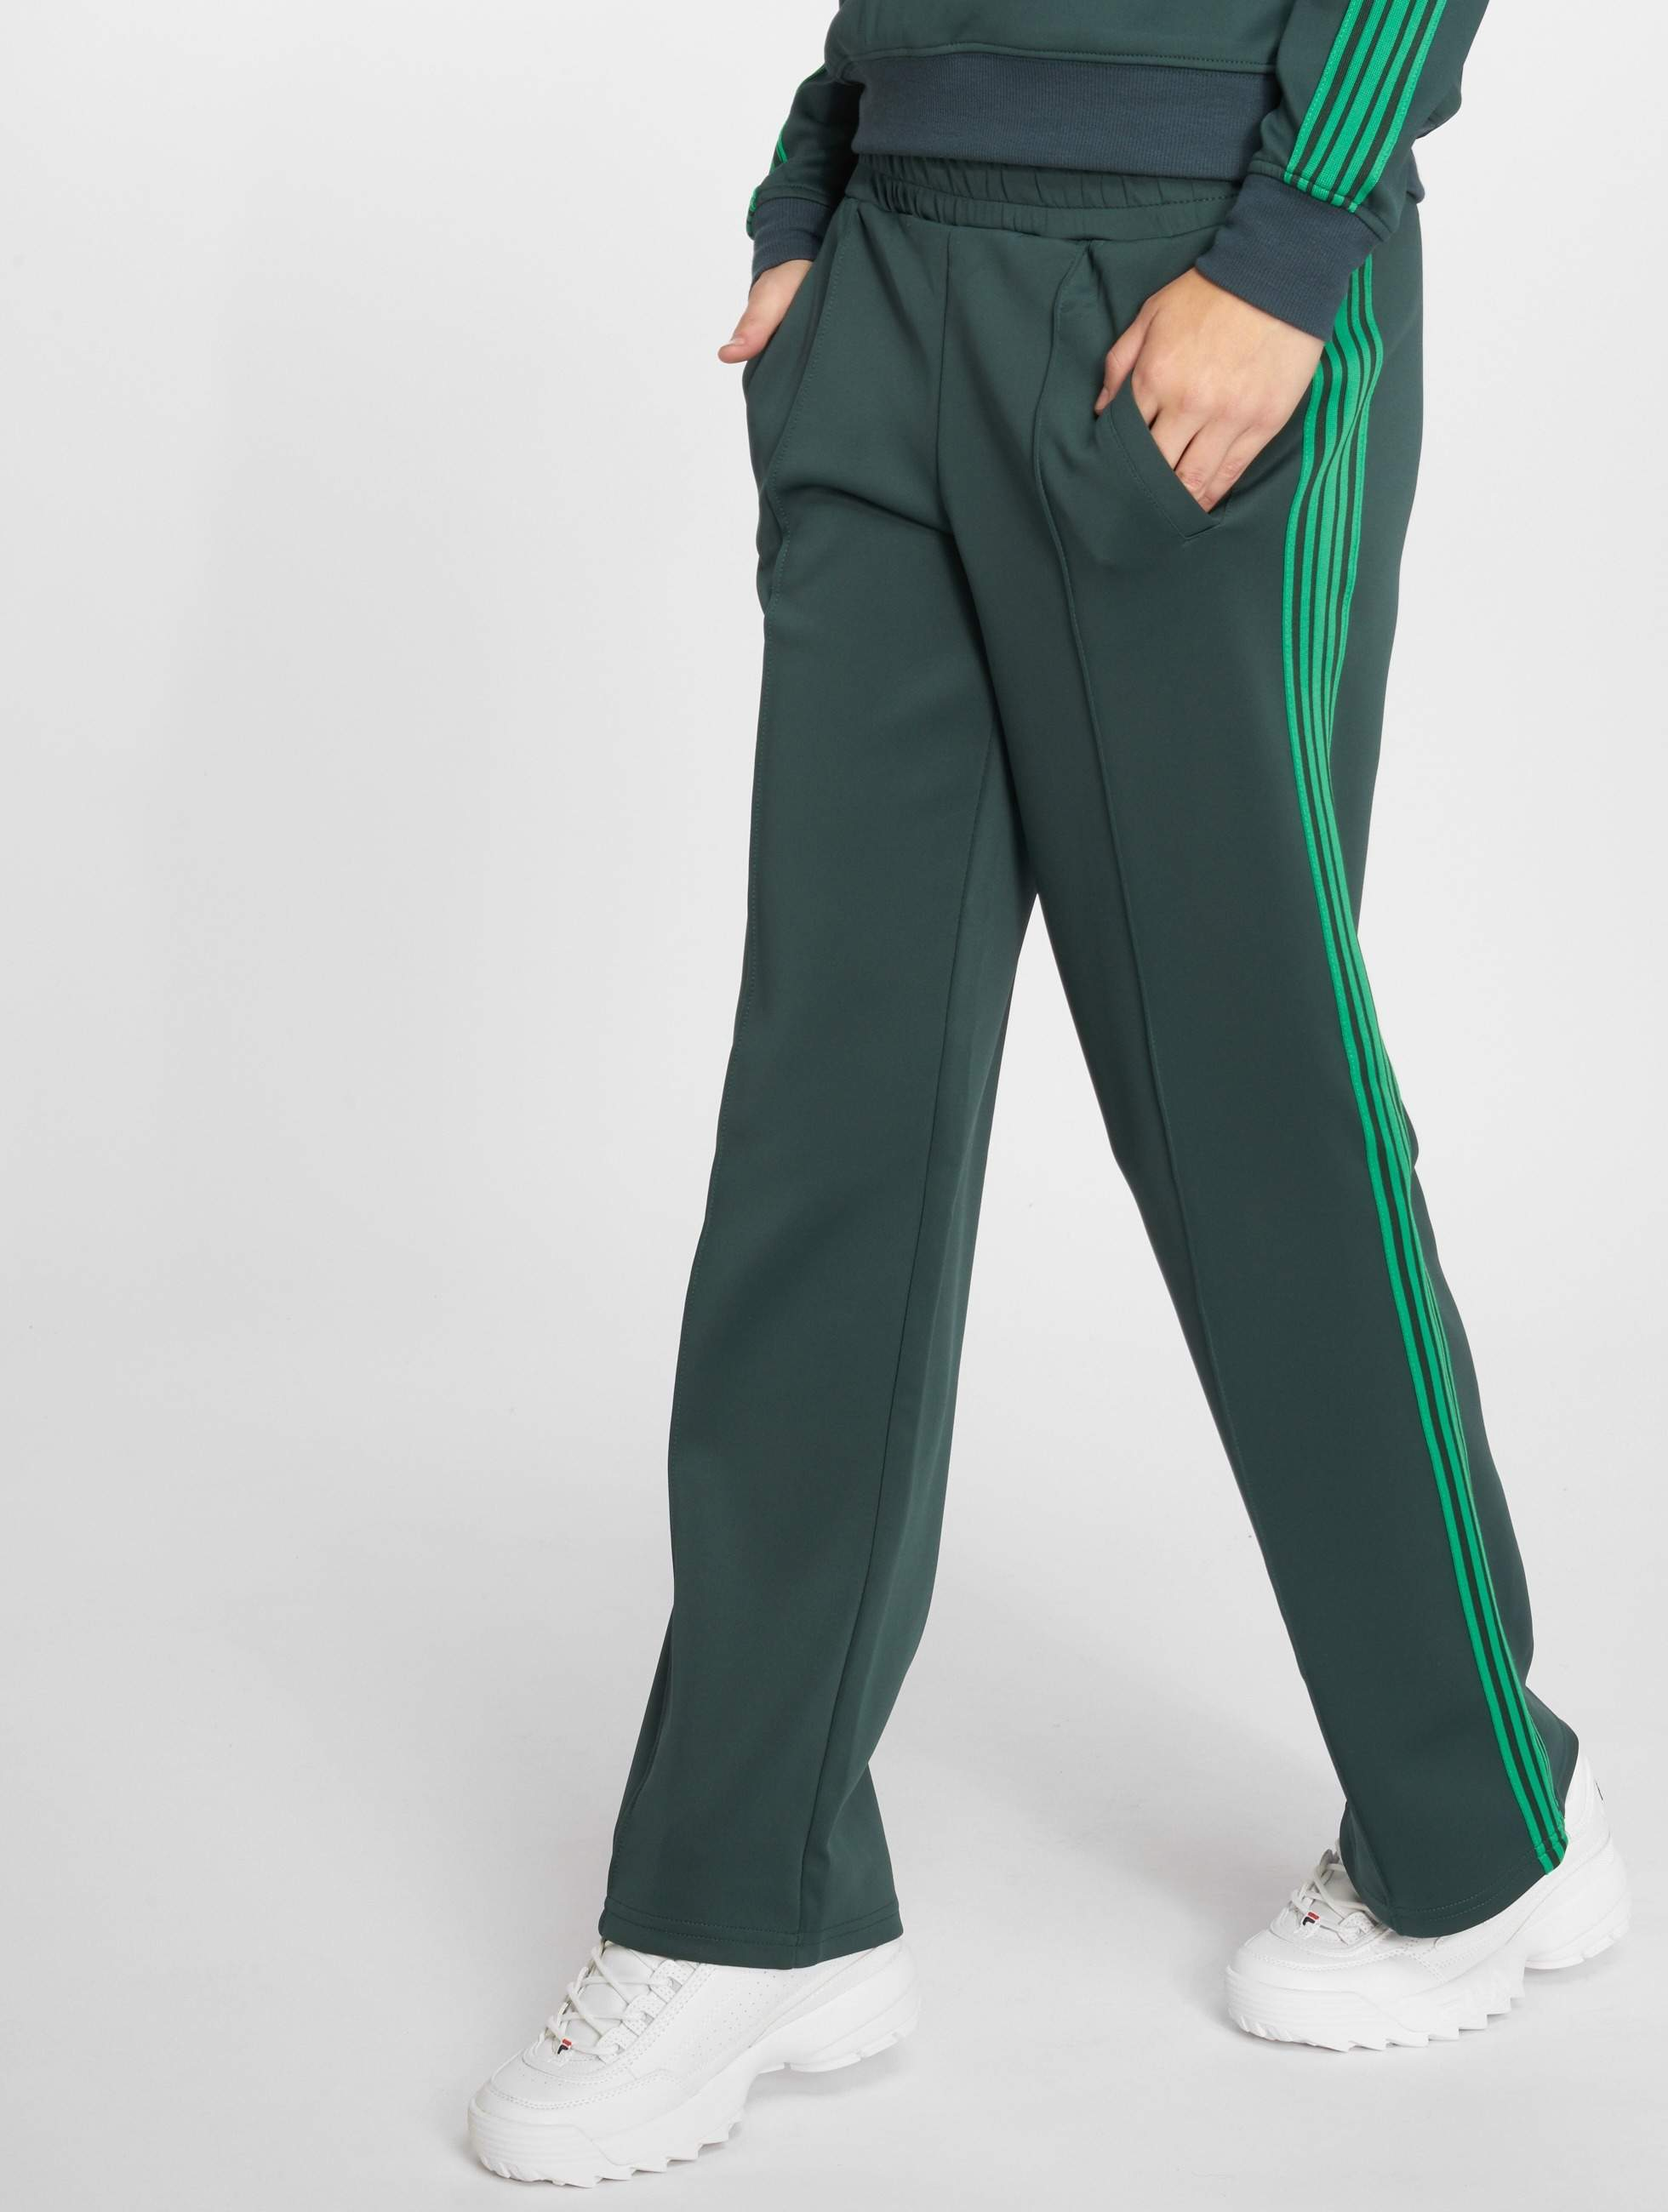 Joggingbroek Groen.Only Broek Joggingbroek Onlmisty Long In Groen 518986